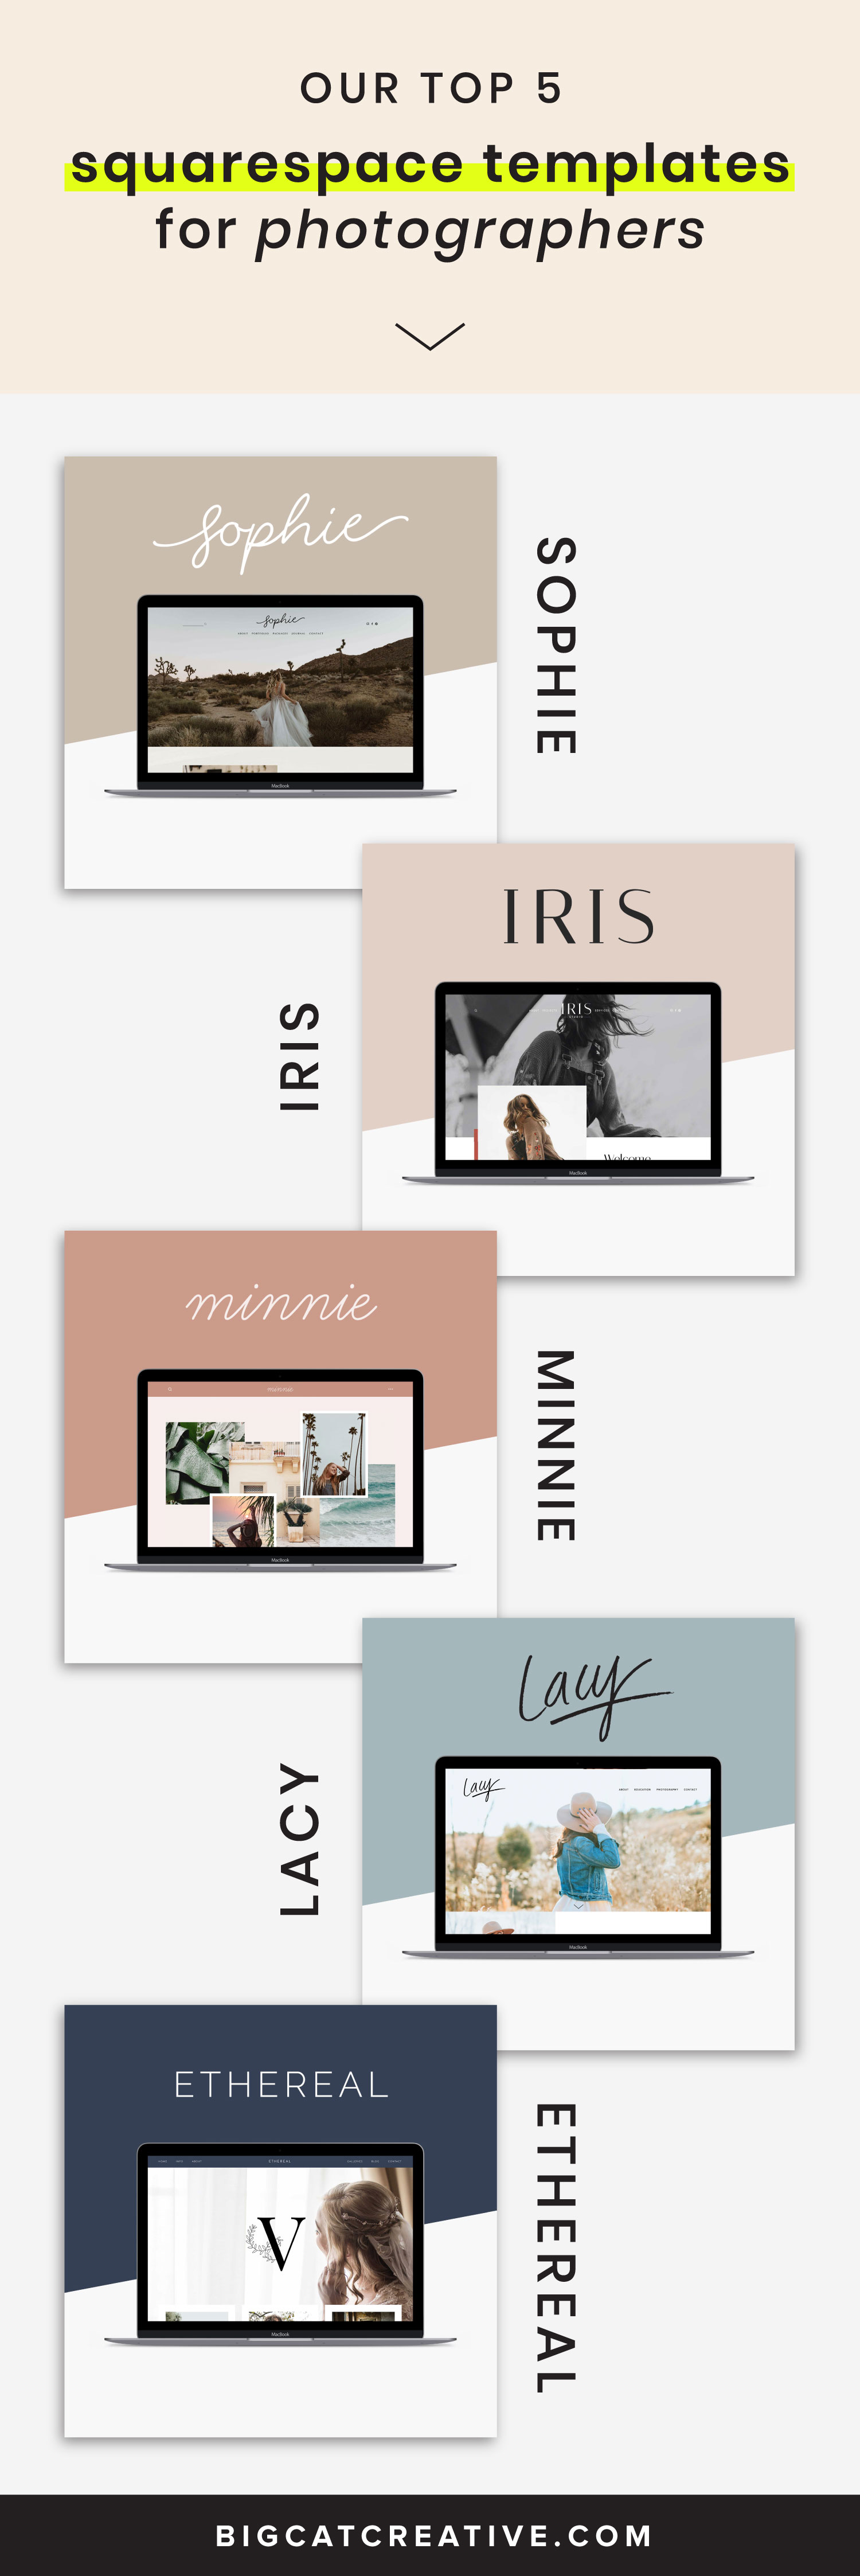 See our top 5 Squarespace Templates for Photographers. Our unique Squarespace Template Kits are perfect for all photographers and creative entrepreneurs and are completely customizable for your business. Squarespace Tips by Big Cat Creative   Squarespace Templates for Photographers   Web Design Tips